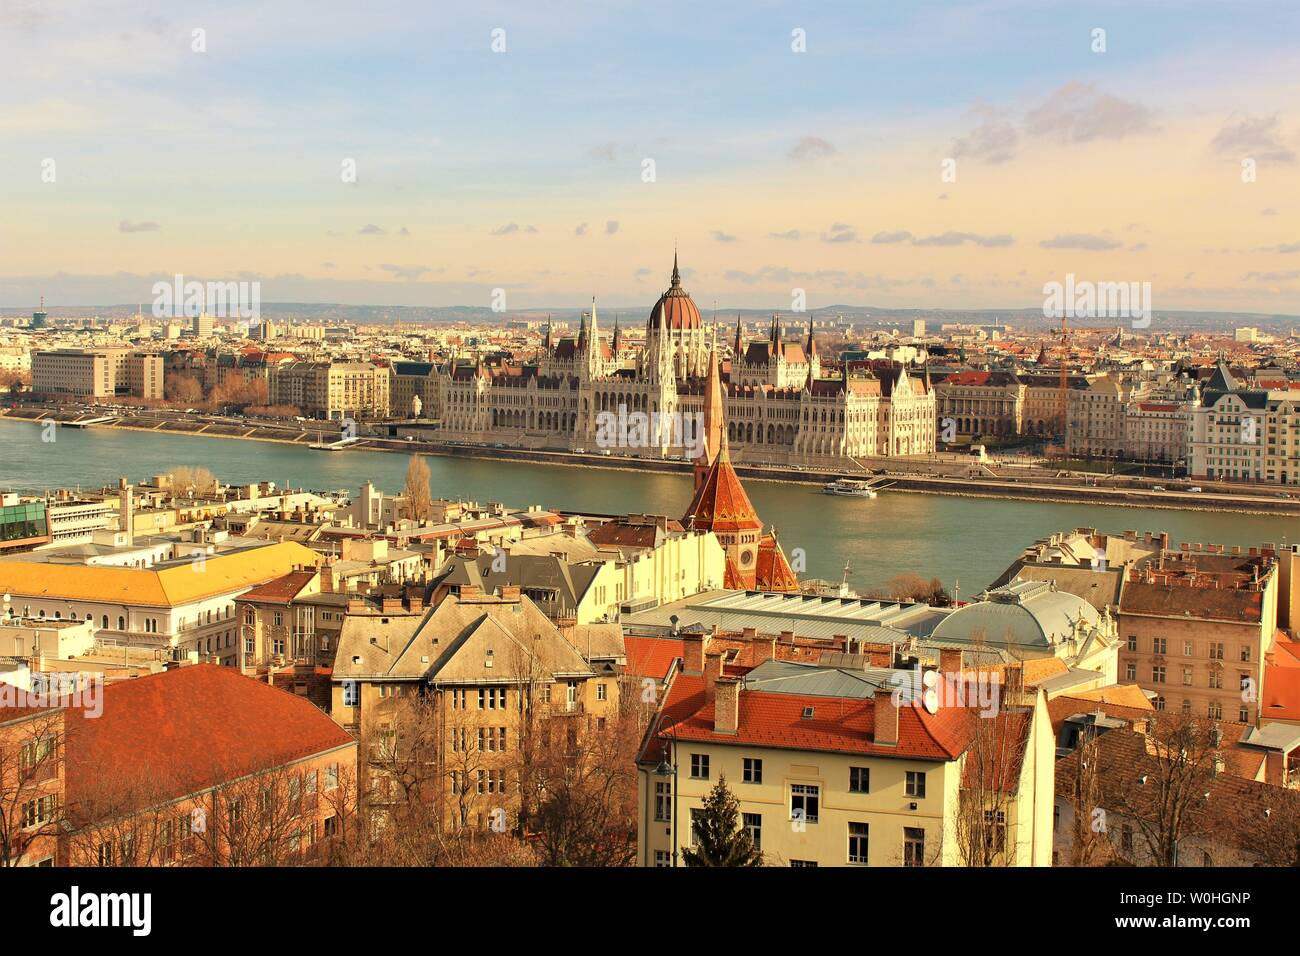 A view of the city of Budapest which is divided by the Danube river. In the centre is the Hungarian House of Parliament, which sits on the Pest side. Stock Photo